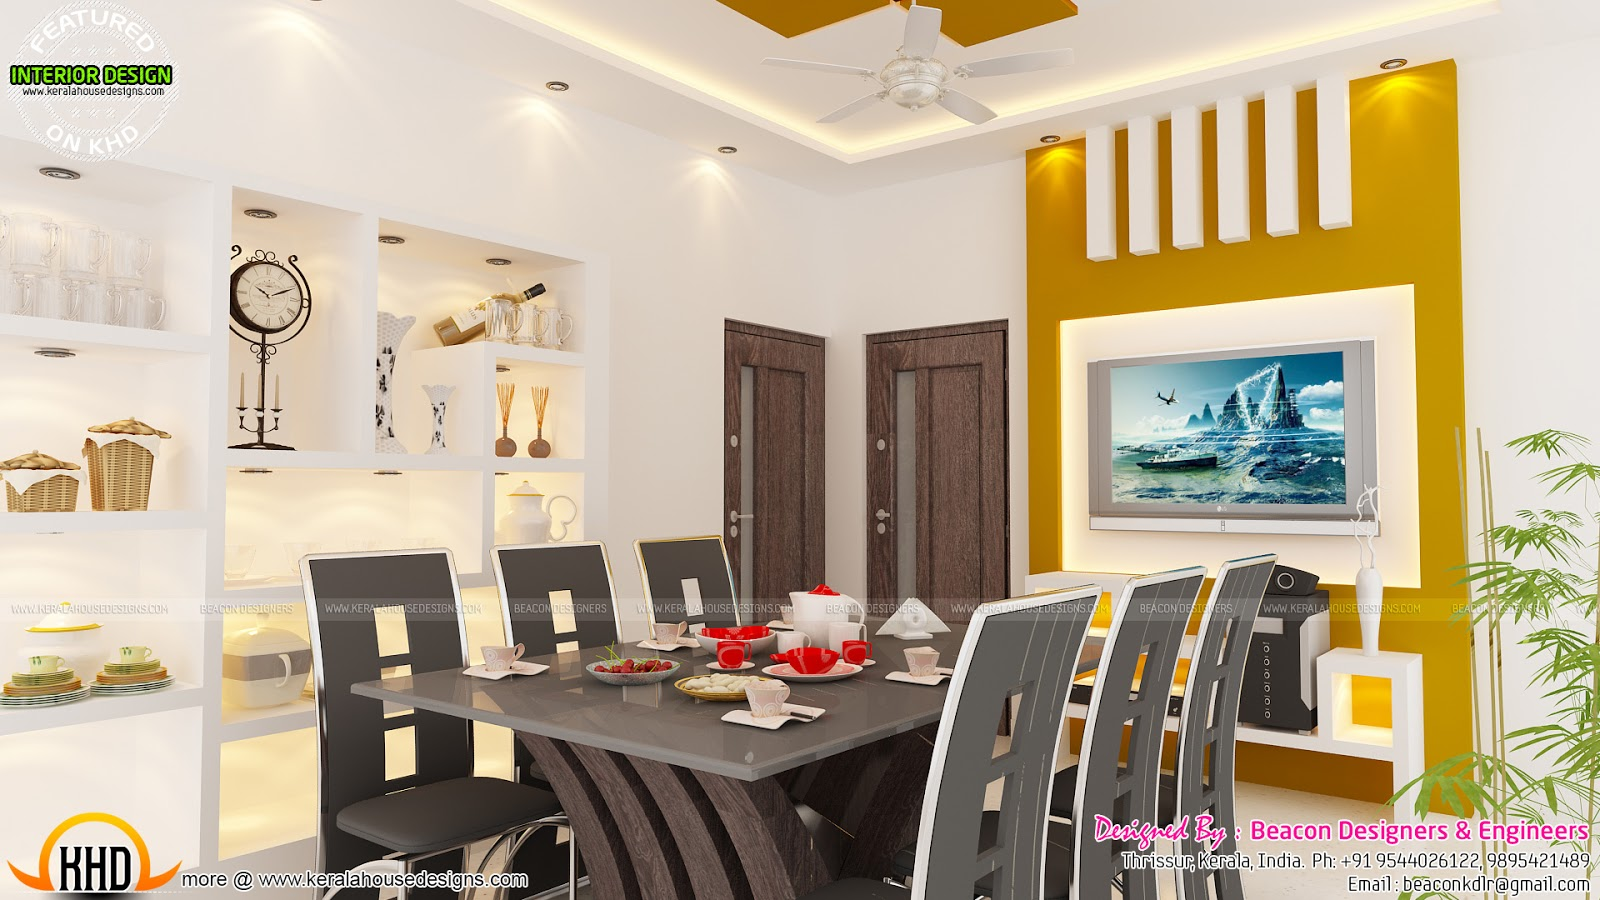 Kerala Interior Designs Kerala Home Design And Floor Plans